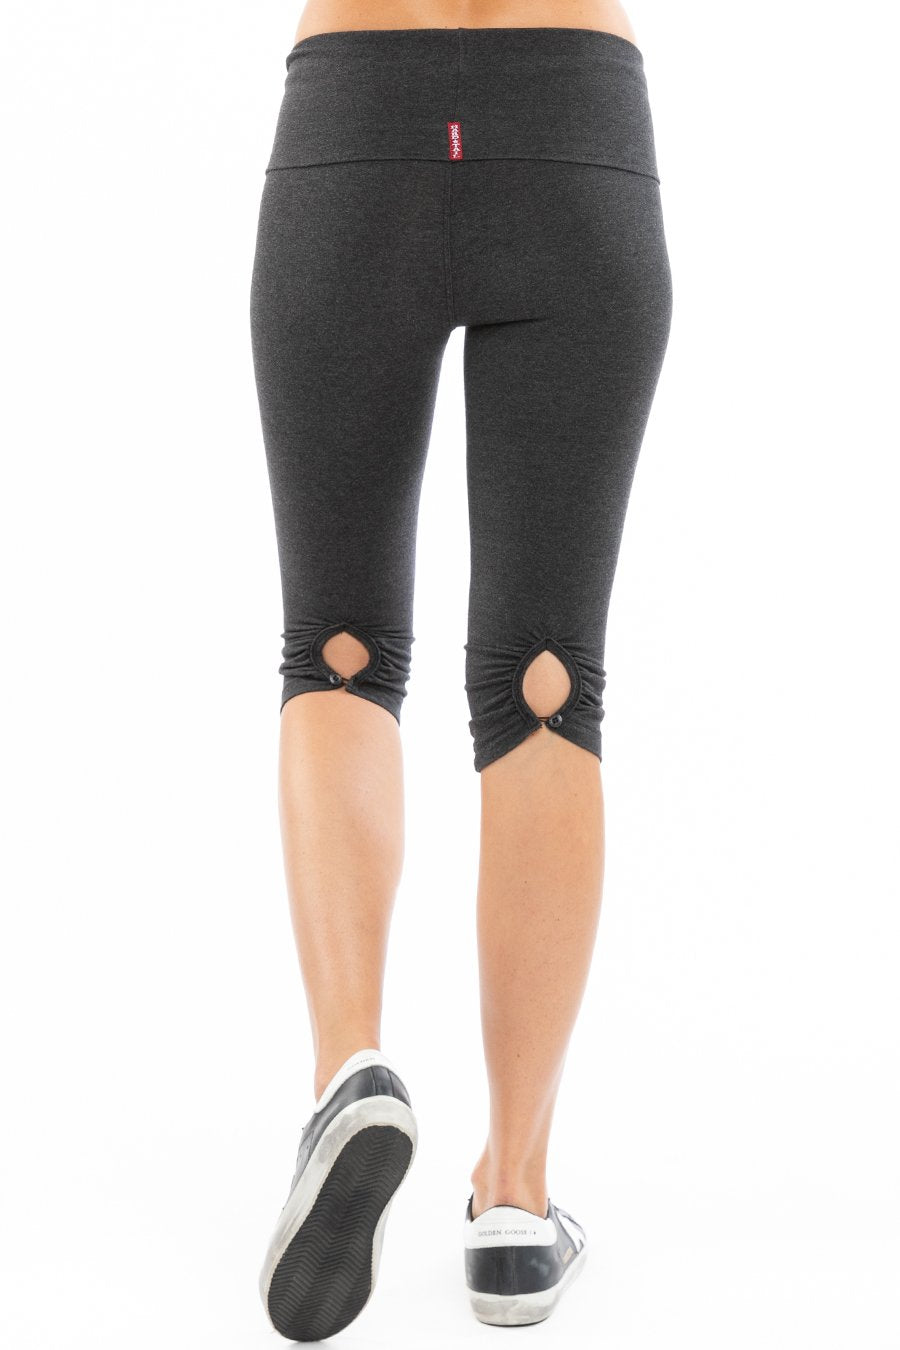 Hard Tail Forever Contour Shirred Button Back Knee Legging - Dark Charcoal Heather Gray - L